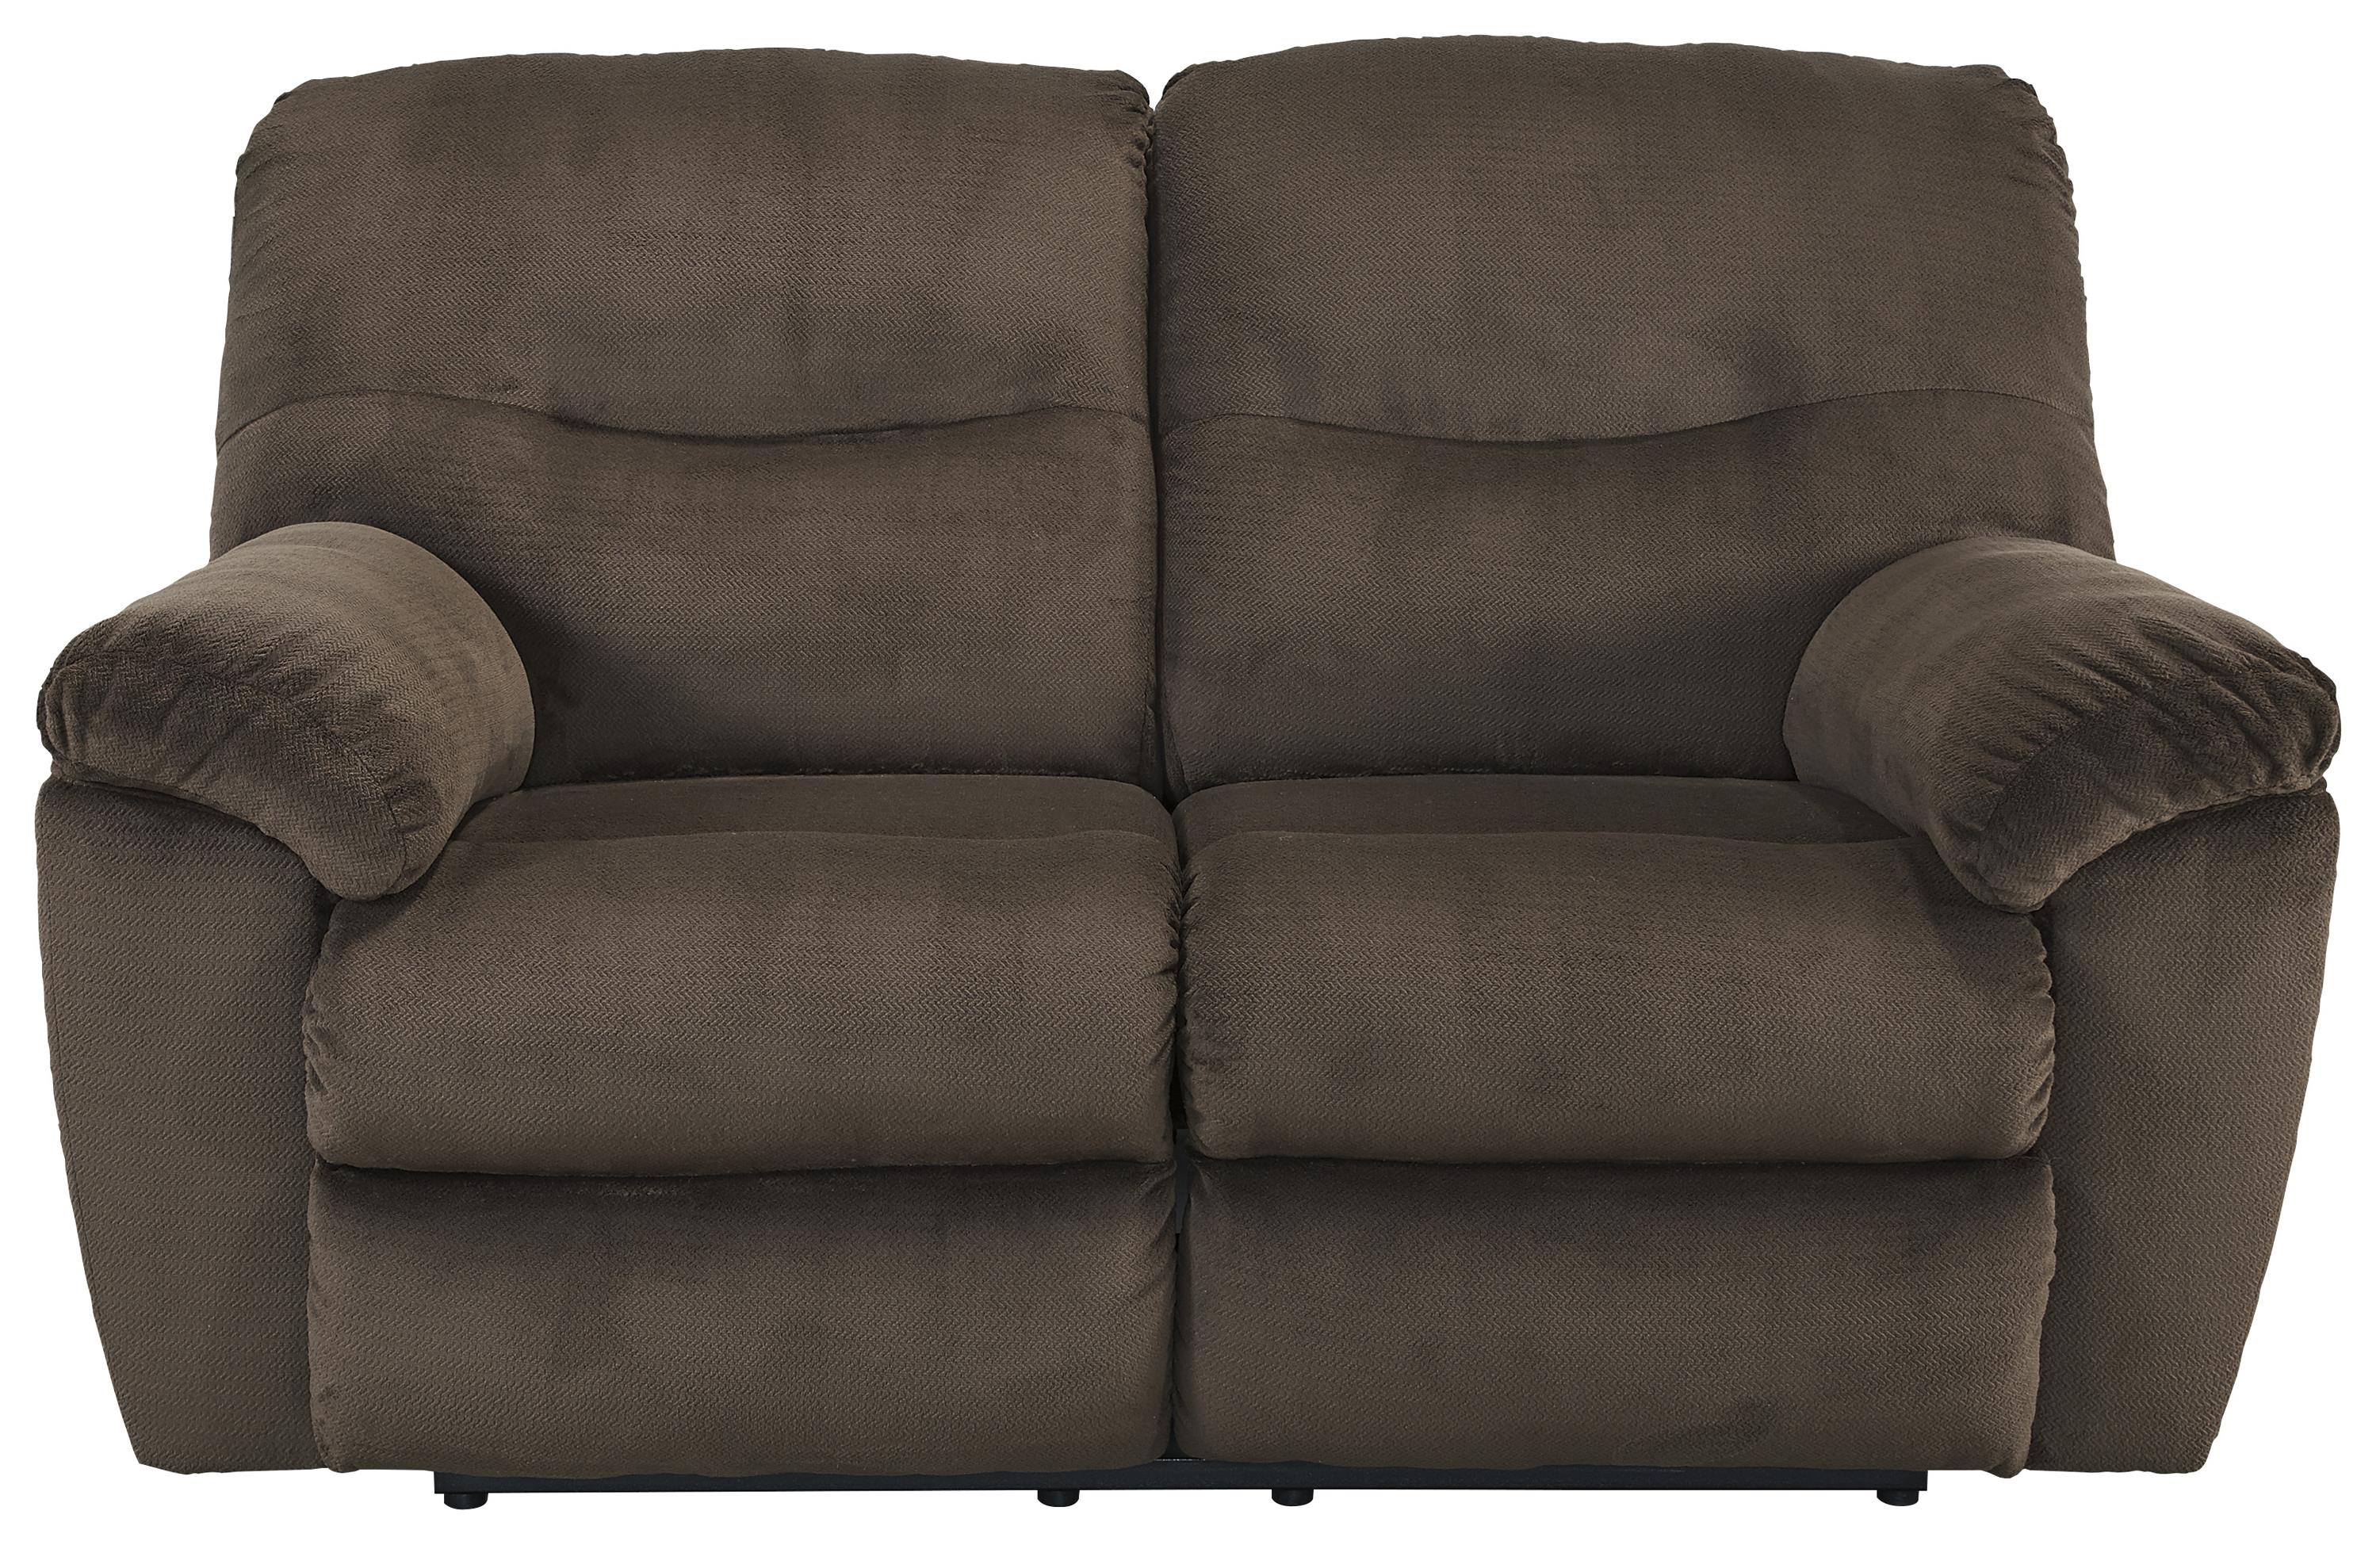 Signature Design by Ashley Slidell Reclining Loveseat - Item Number: 8270286